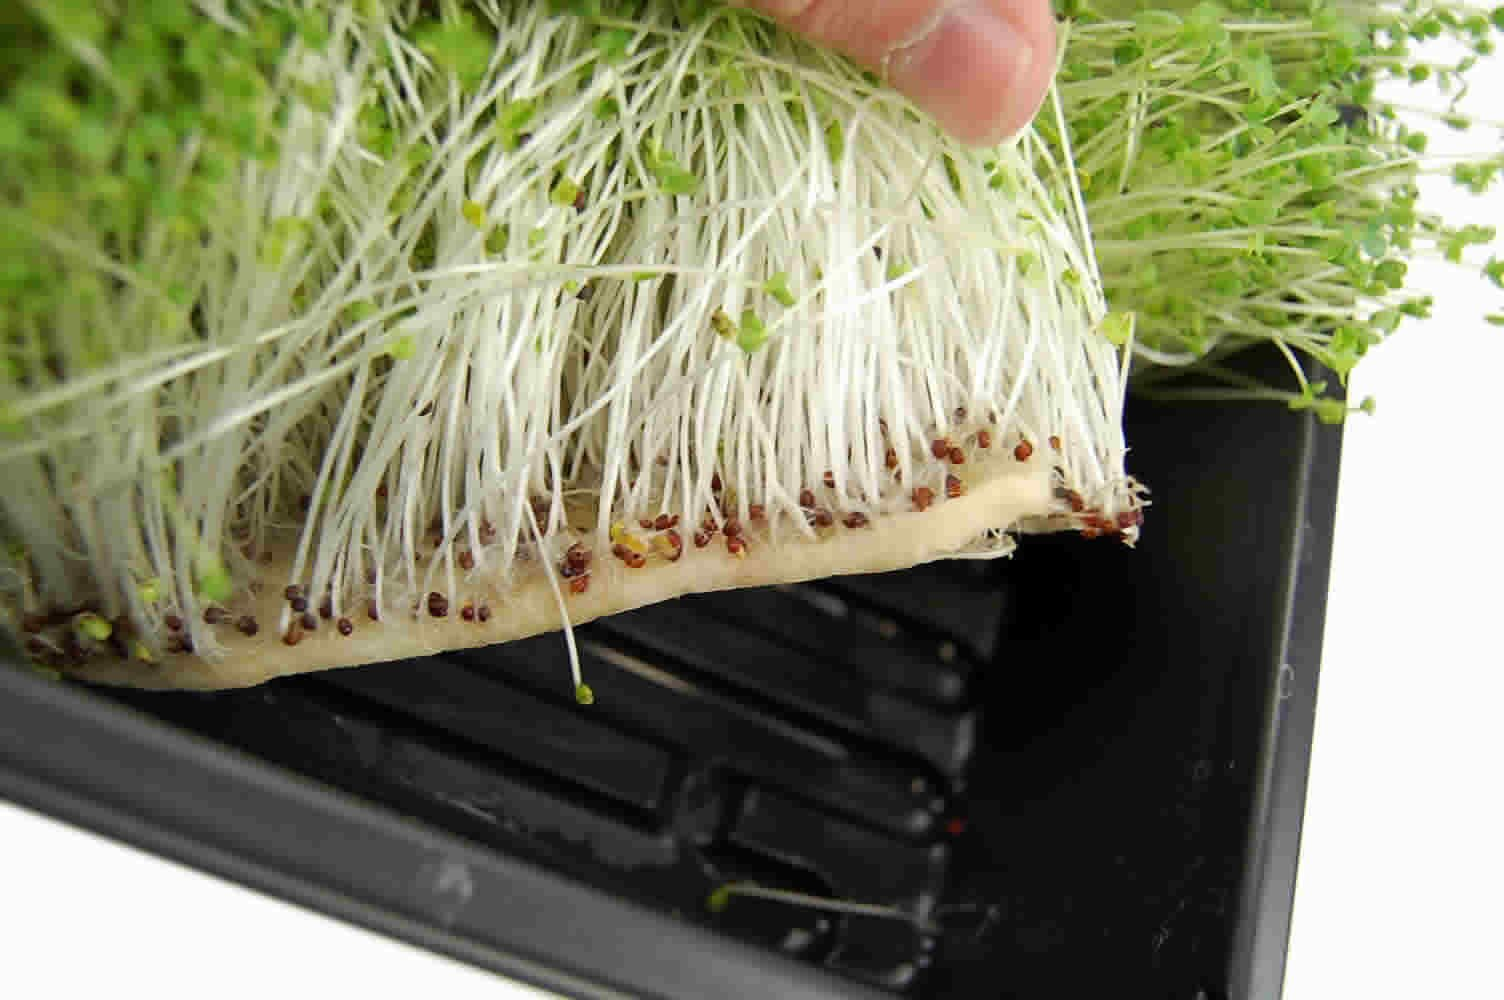 Micro-Mats Hydroponic Grow Pads - For Organic Production - 500 Pack - Plant & Seed Germination: Wheatgrass, Microgreens, More - For 20'' x 10'' Greenhouse Trays